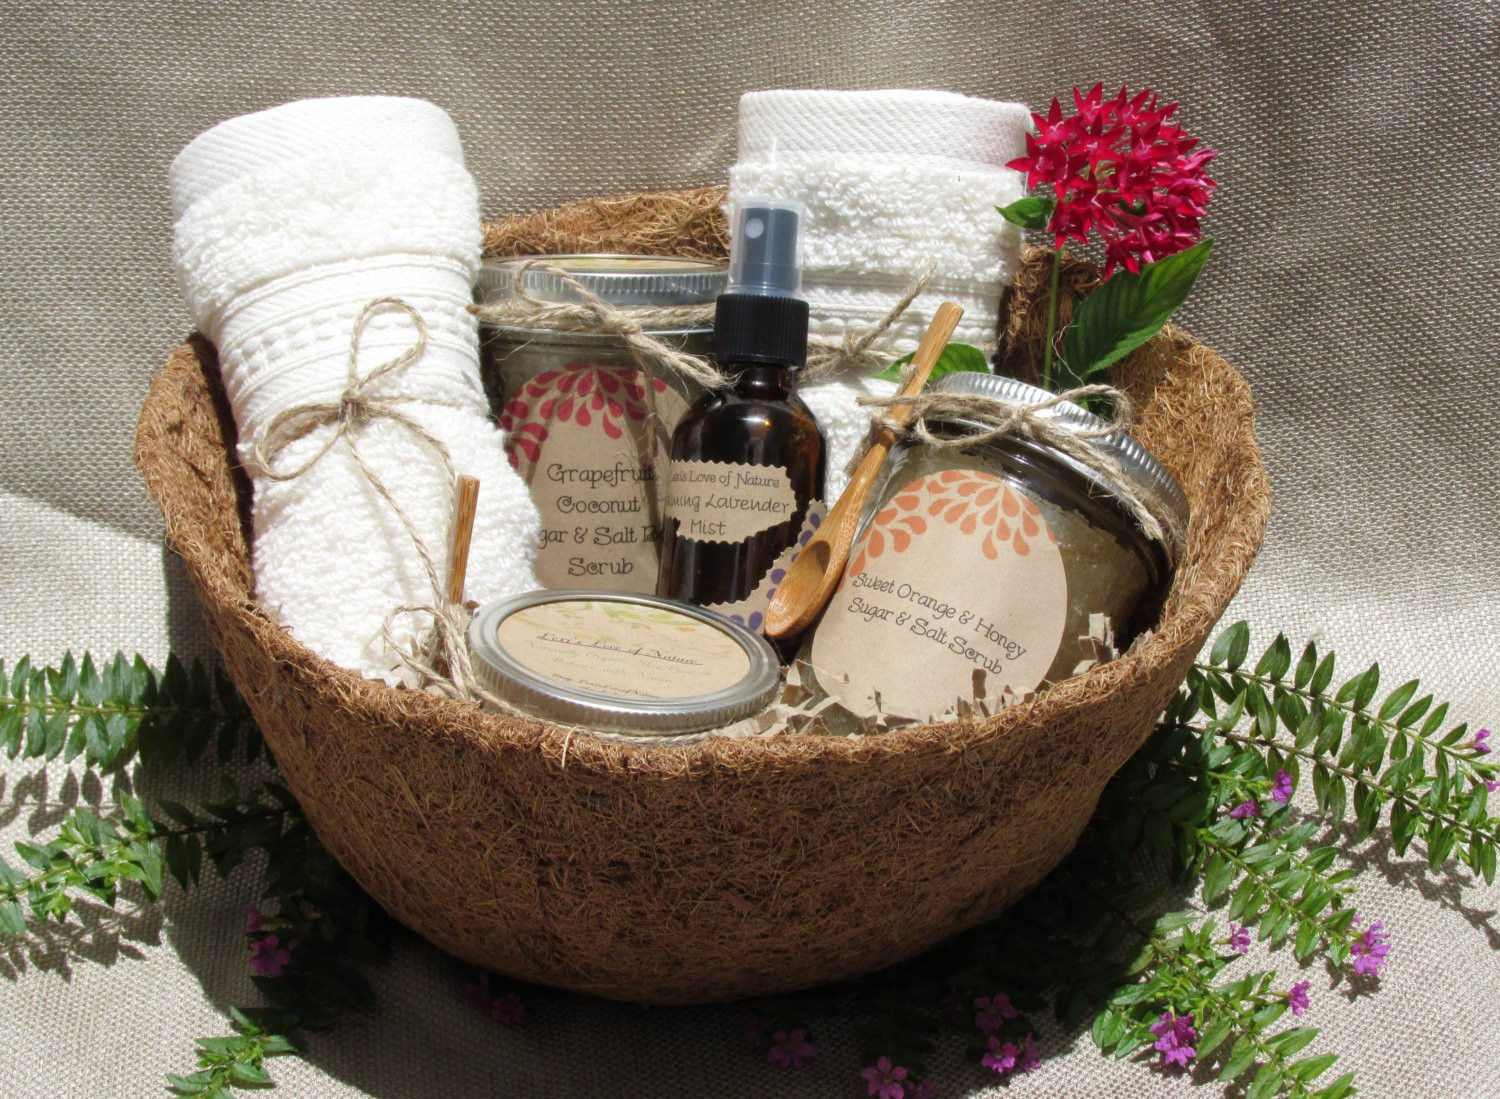 Best ideas about Relaxation Gift Basket Ideas . Save or Pin Custom Gift Basket Proceeds to Charity Relaxation Gift Spa Now.